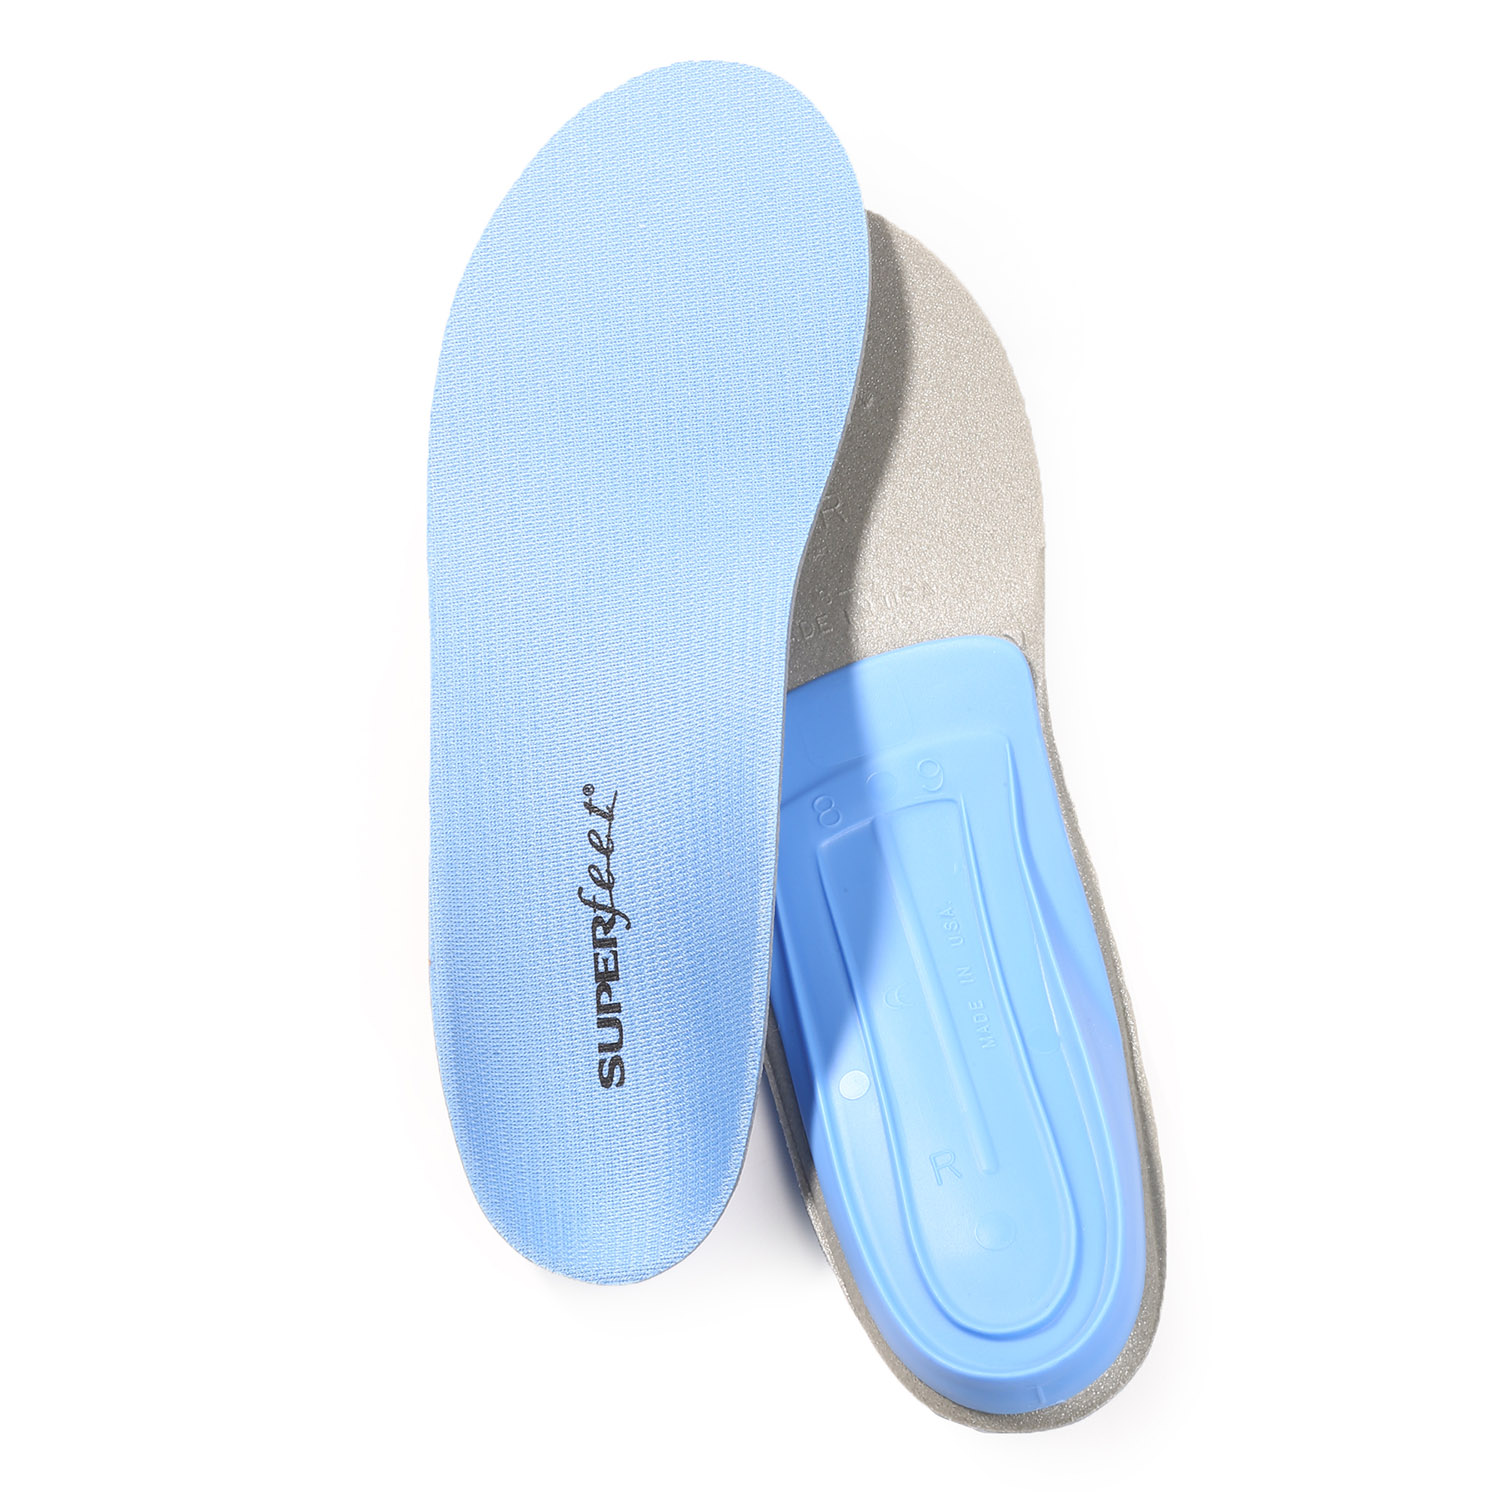 Superfeet Men's Trim-to-Fit Blue Insoles